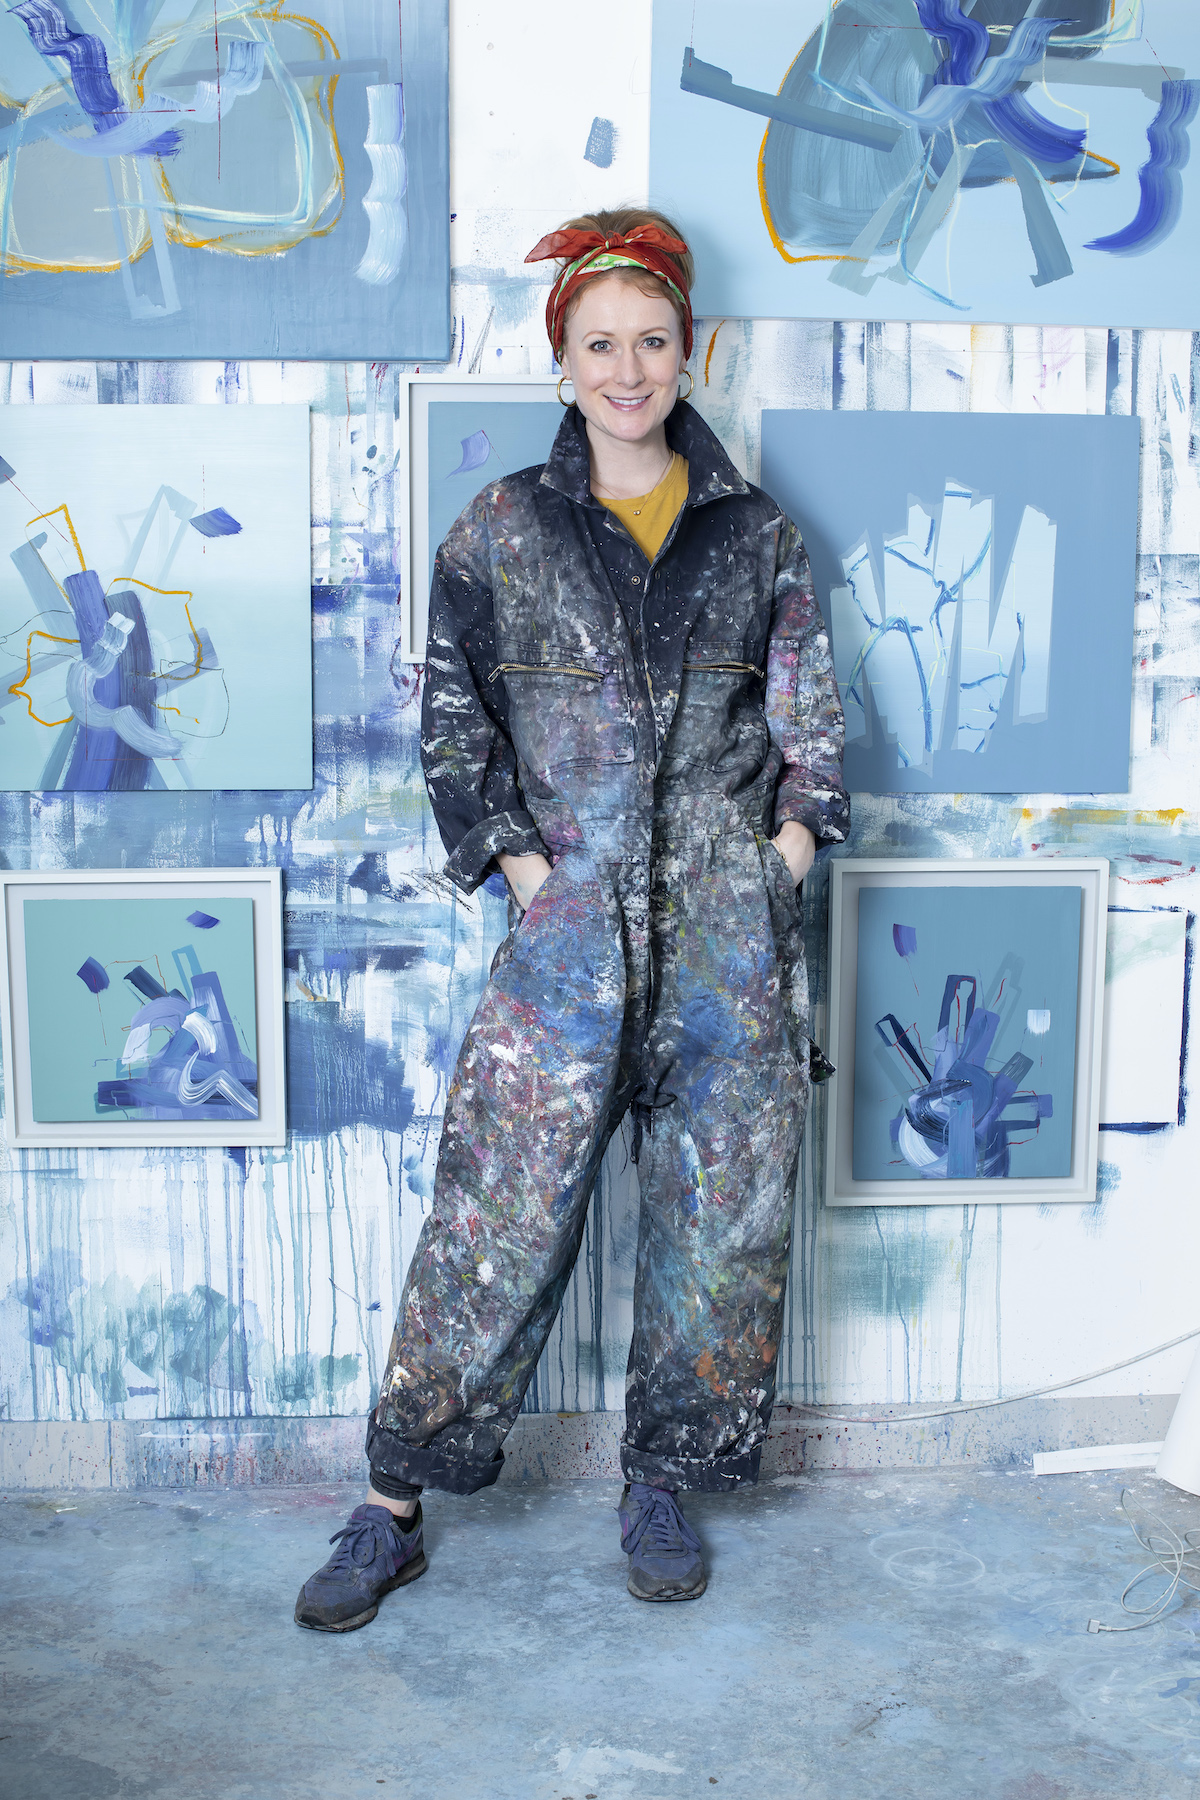 aisling drennan irish artist in her london studio. blue and green abstract paintings